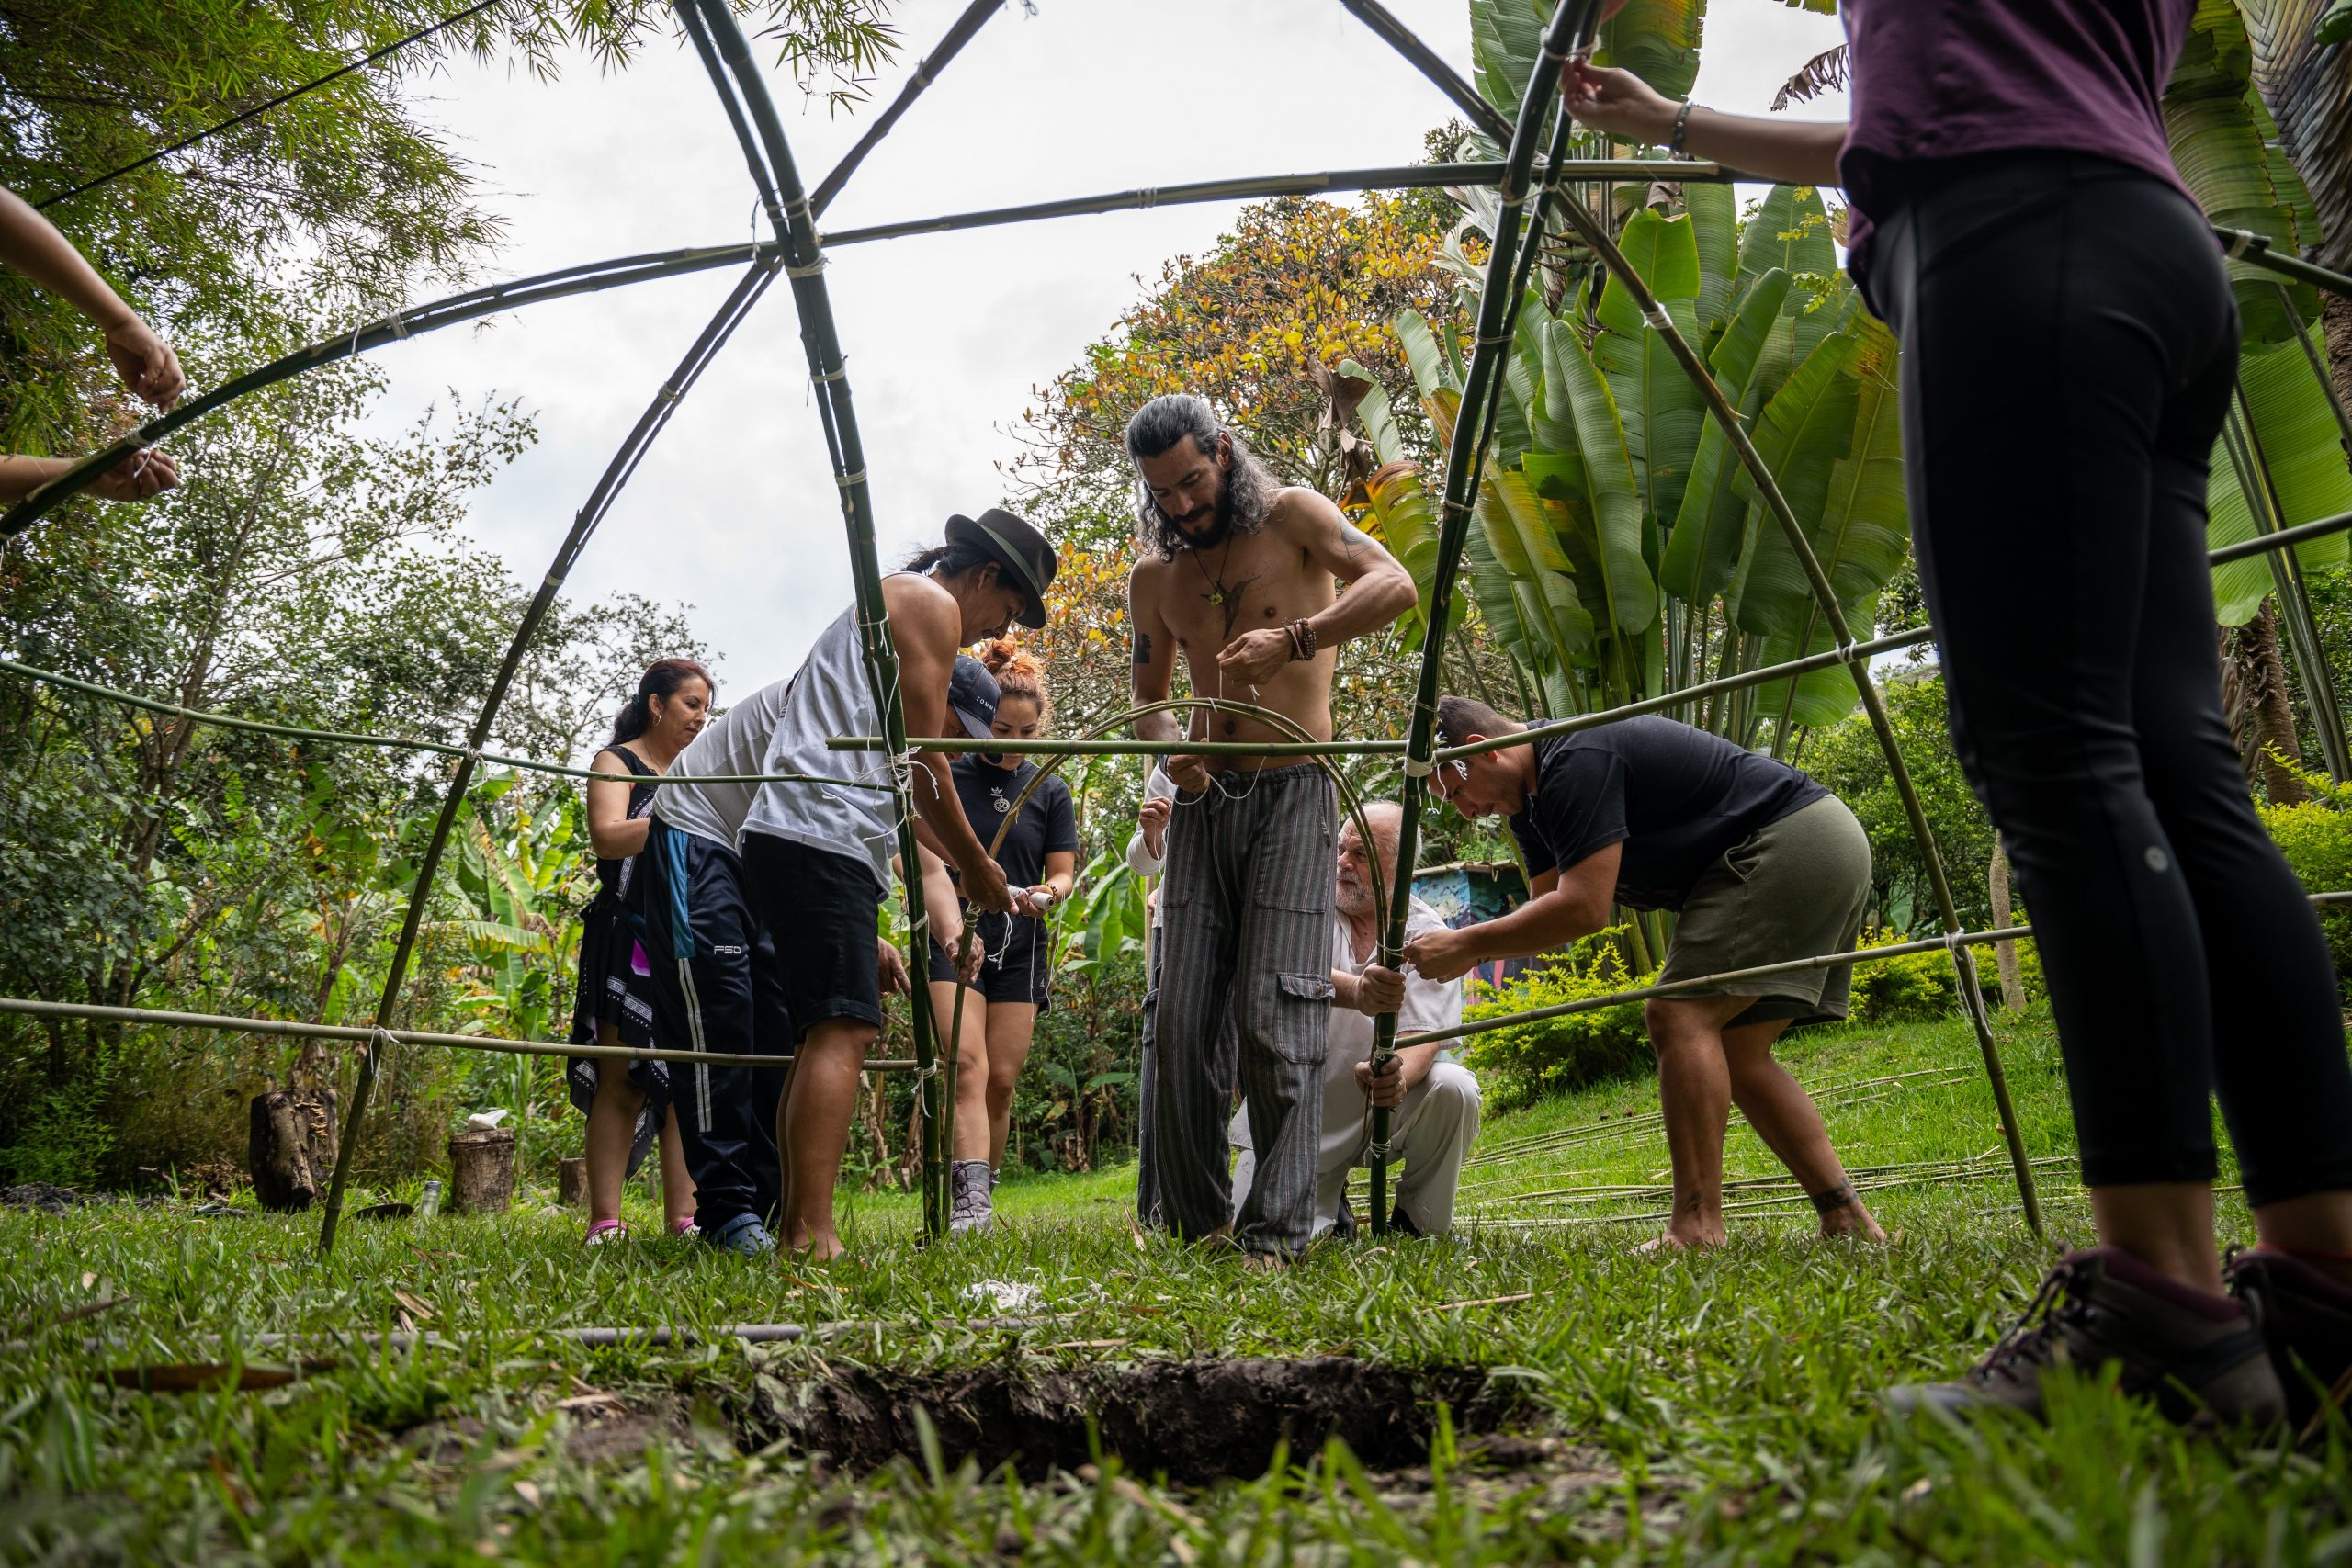 People building temazcal tent